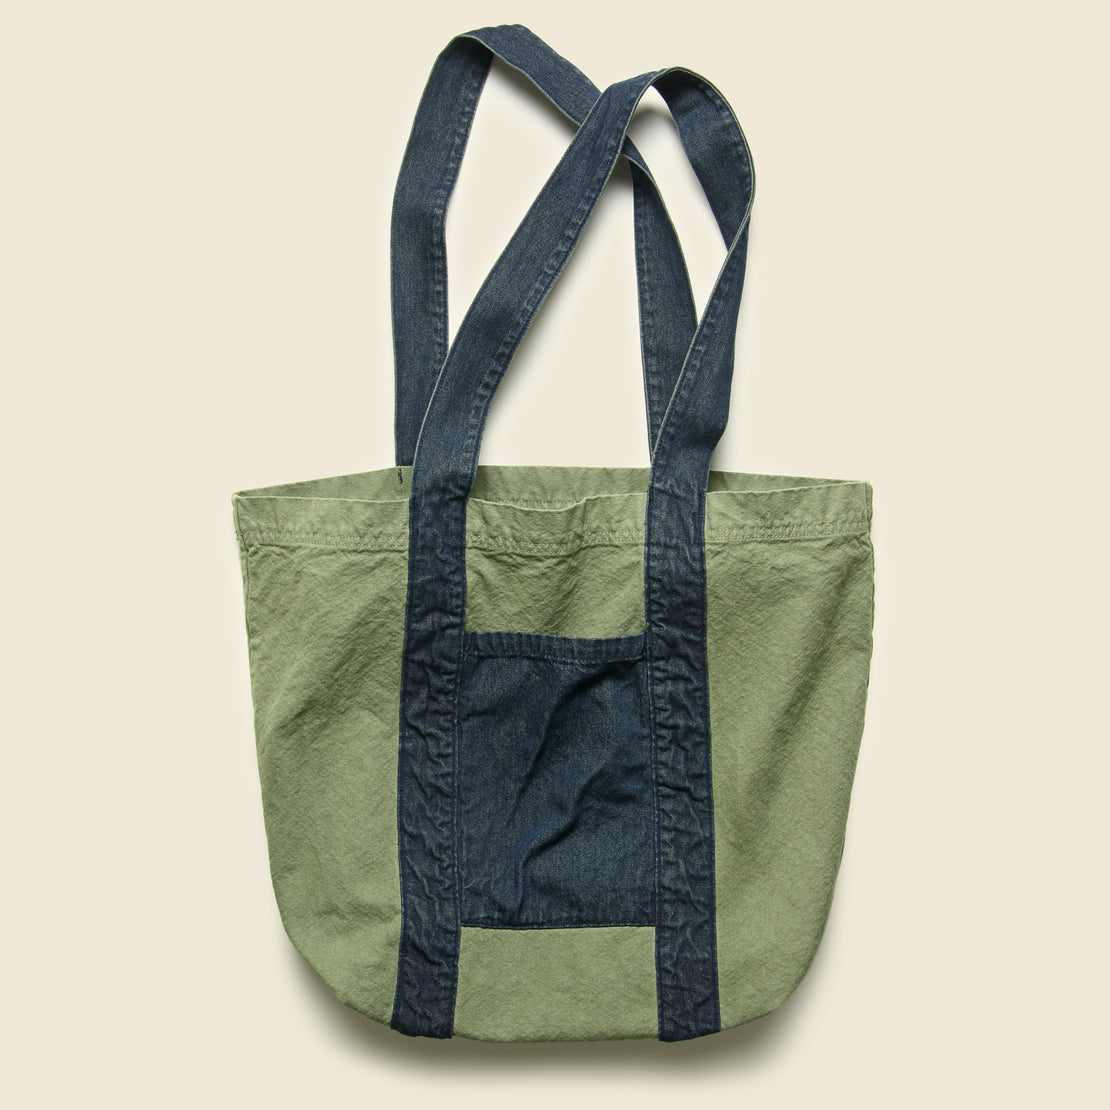 Save Khaki Canvas/Denim Tote Bag - Olive